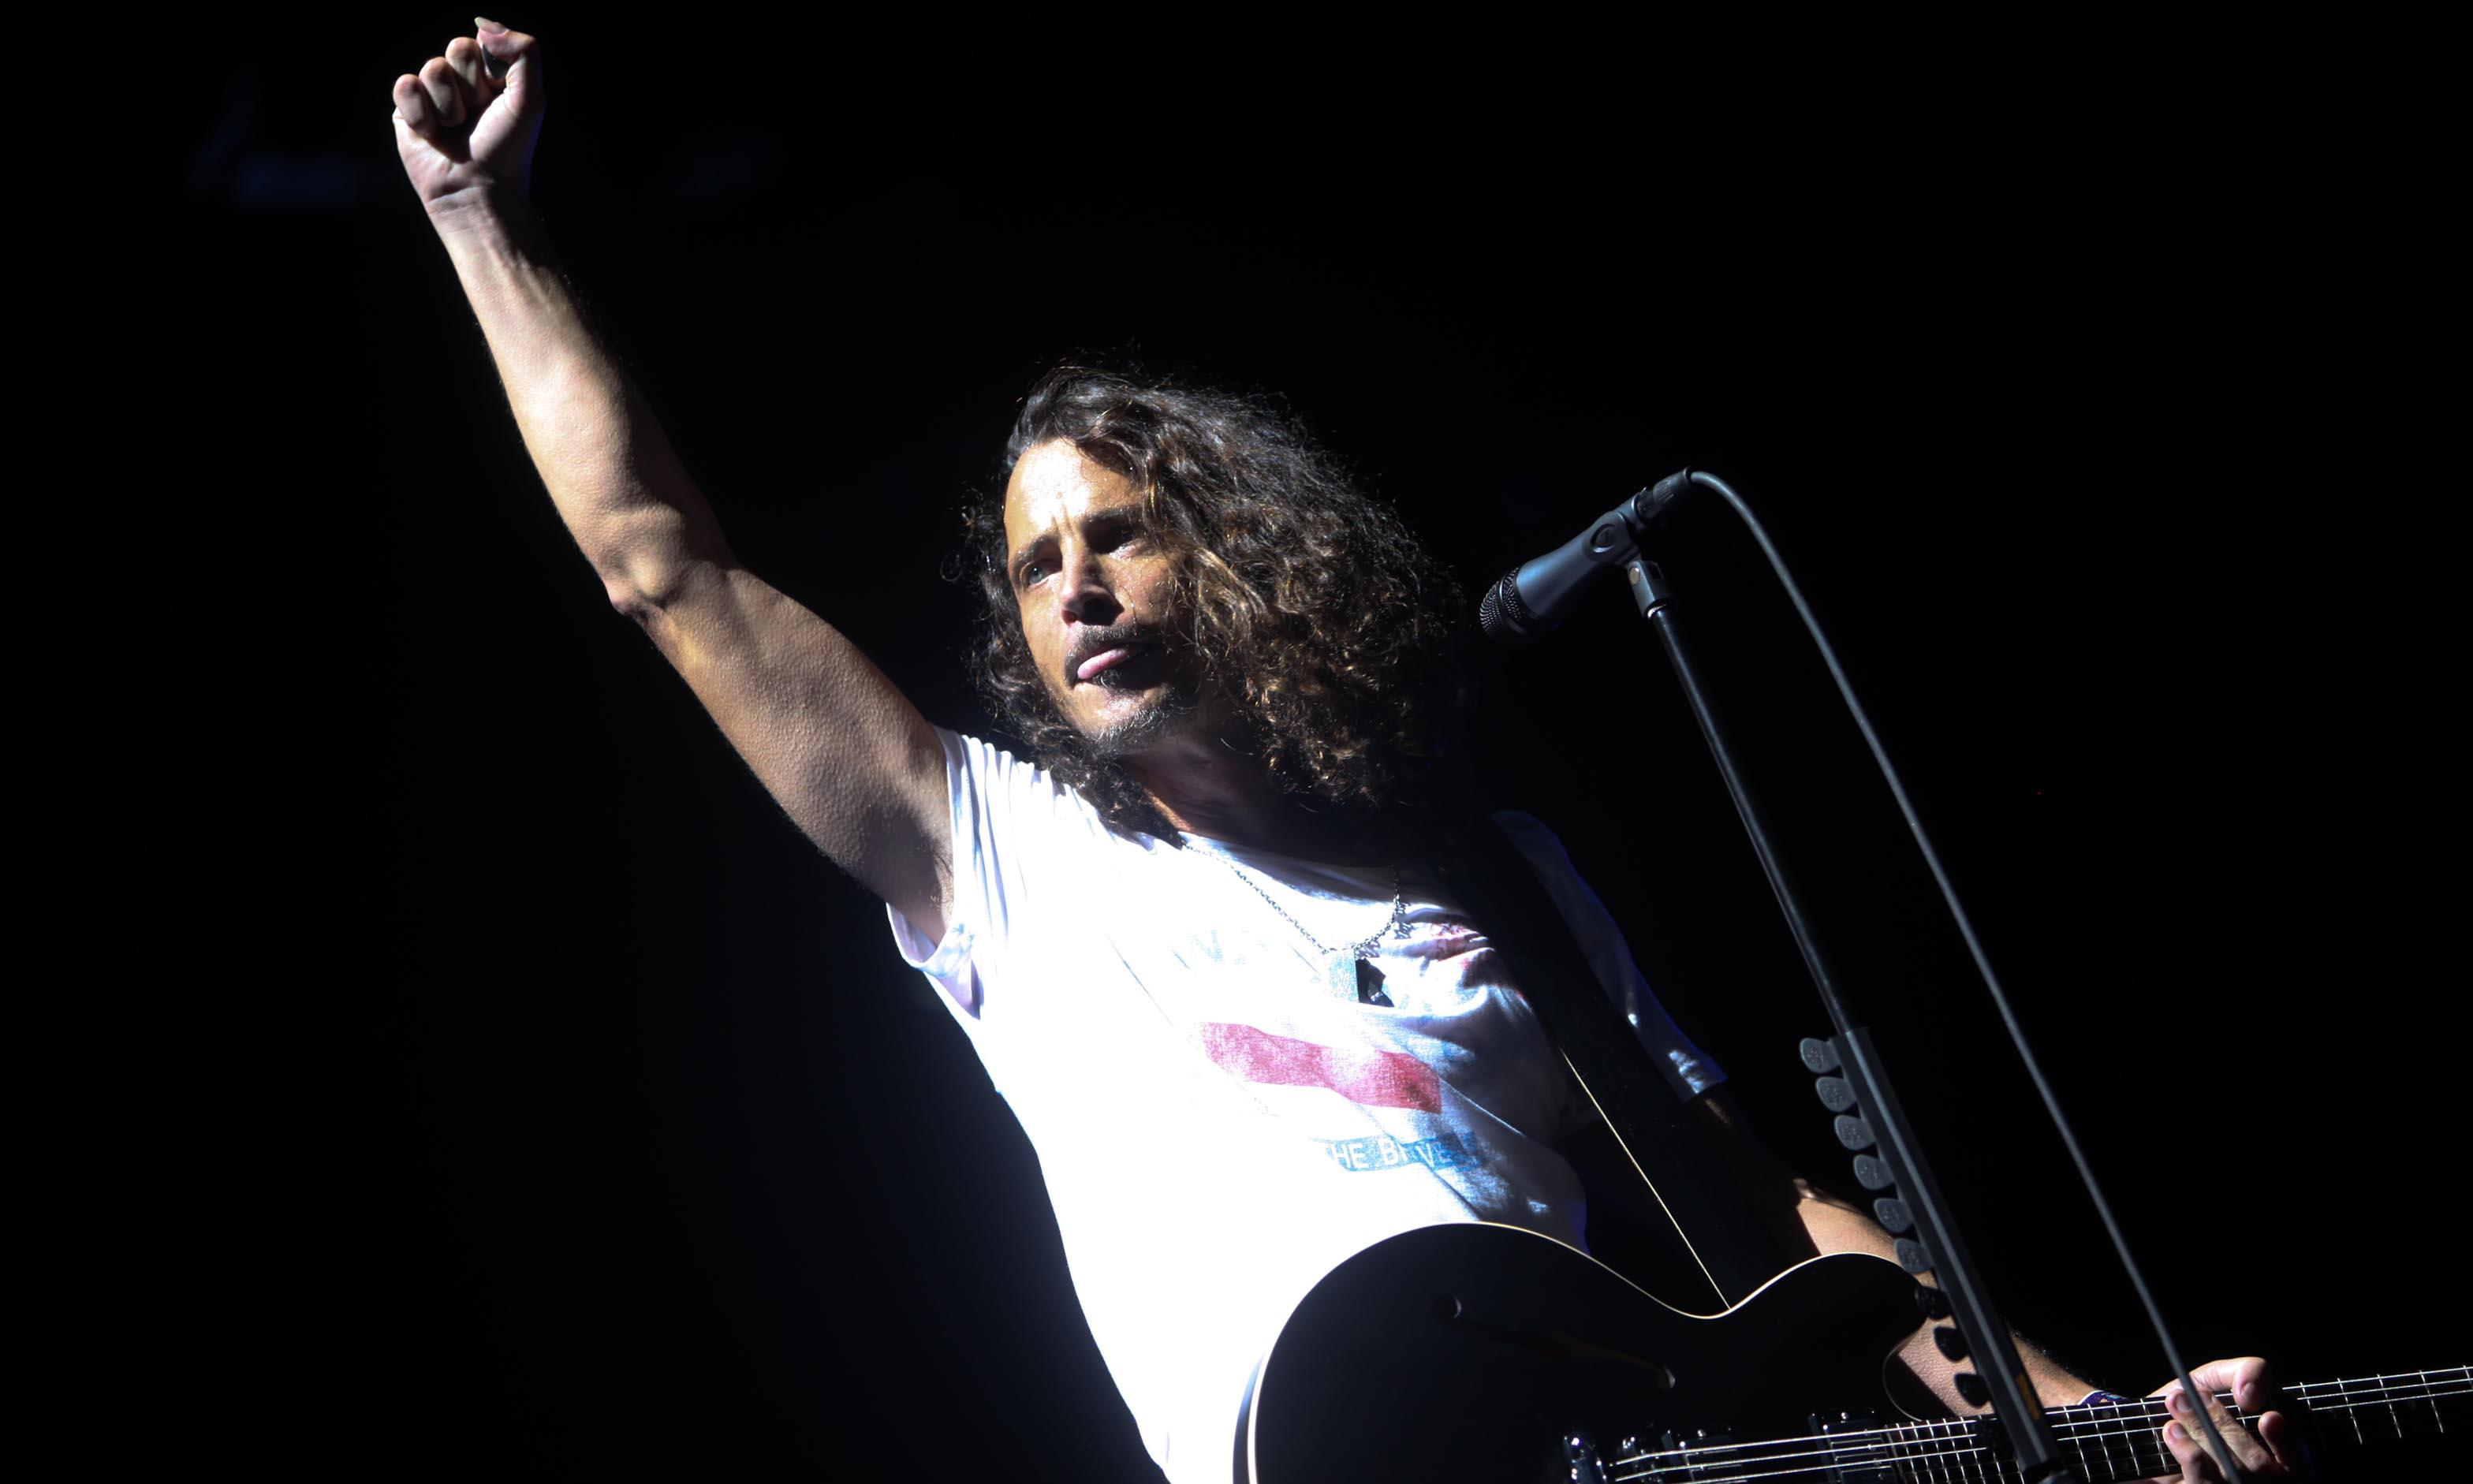 Chris Cornell performs at Lollapalooza festival, Chicago, in 2010.